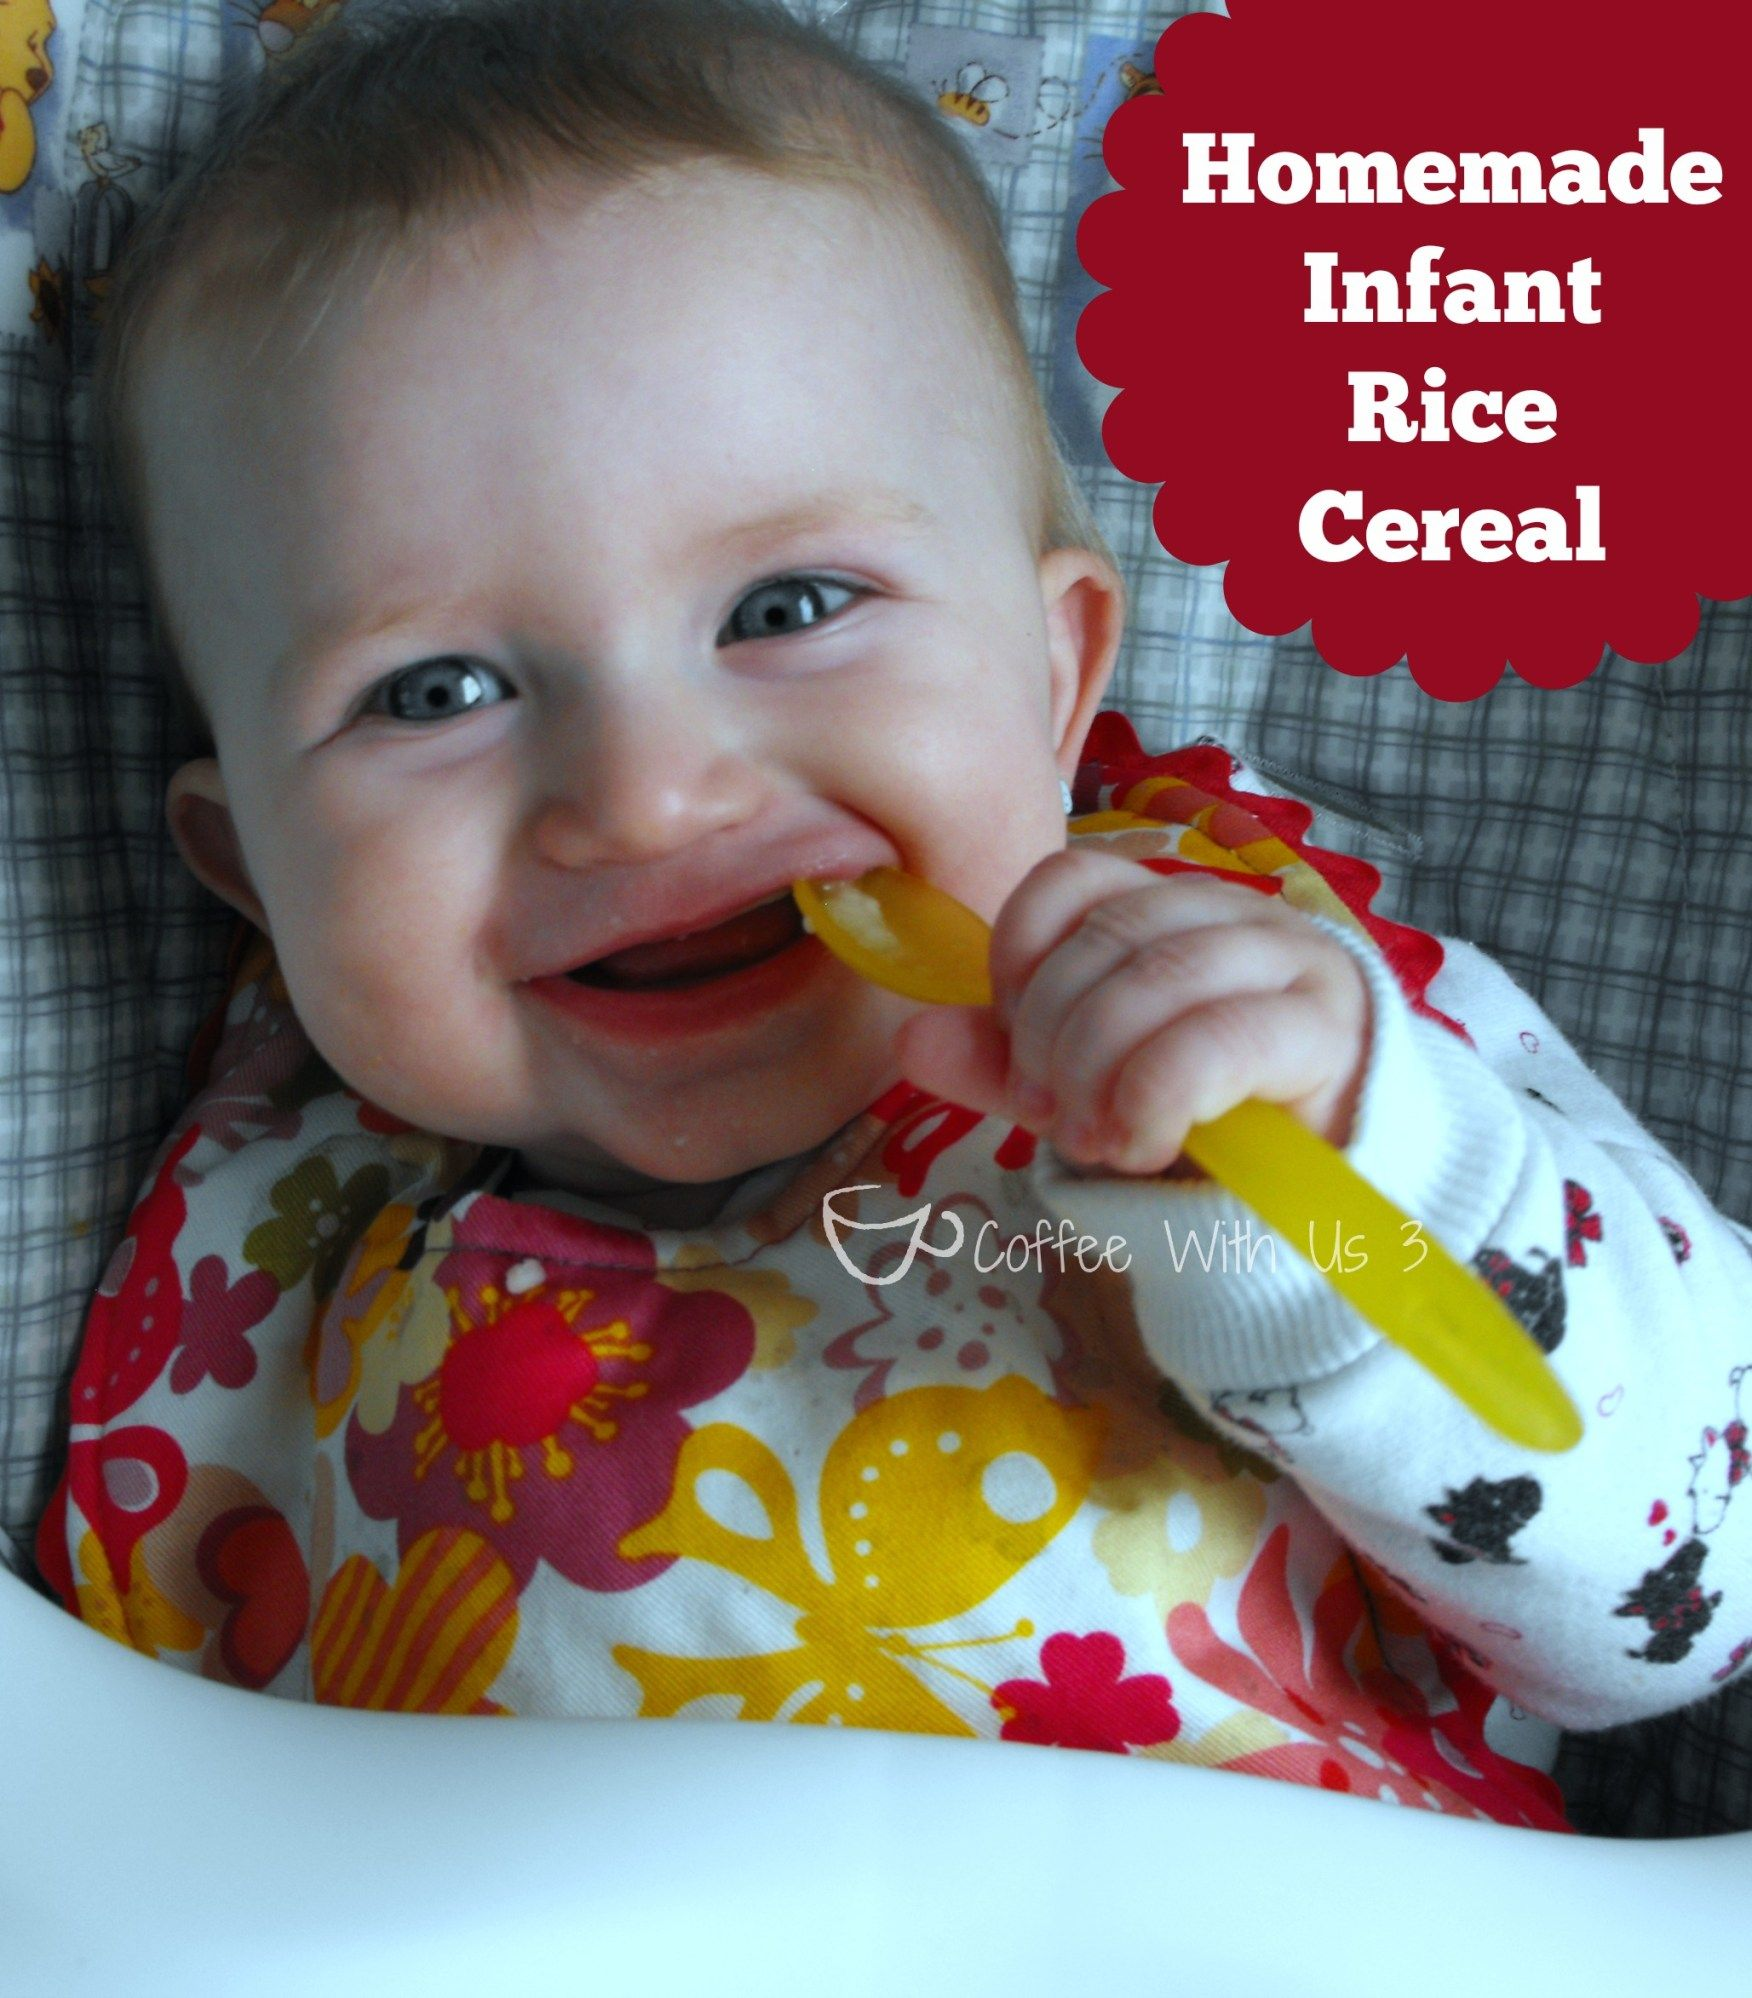 Rice cereal success baby charlotte stuff pinterest rice cereal making your own homemade rice cereal lets you control what ingredients youre feeding your baby plus its really simple ccuart Images